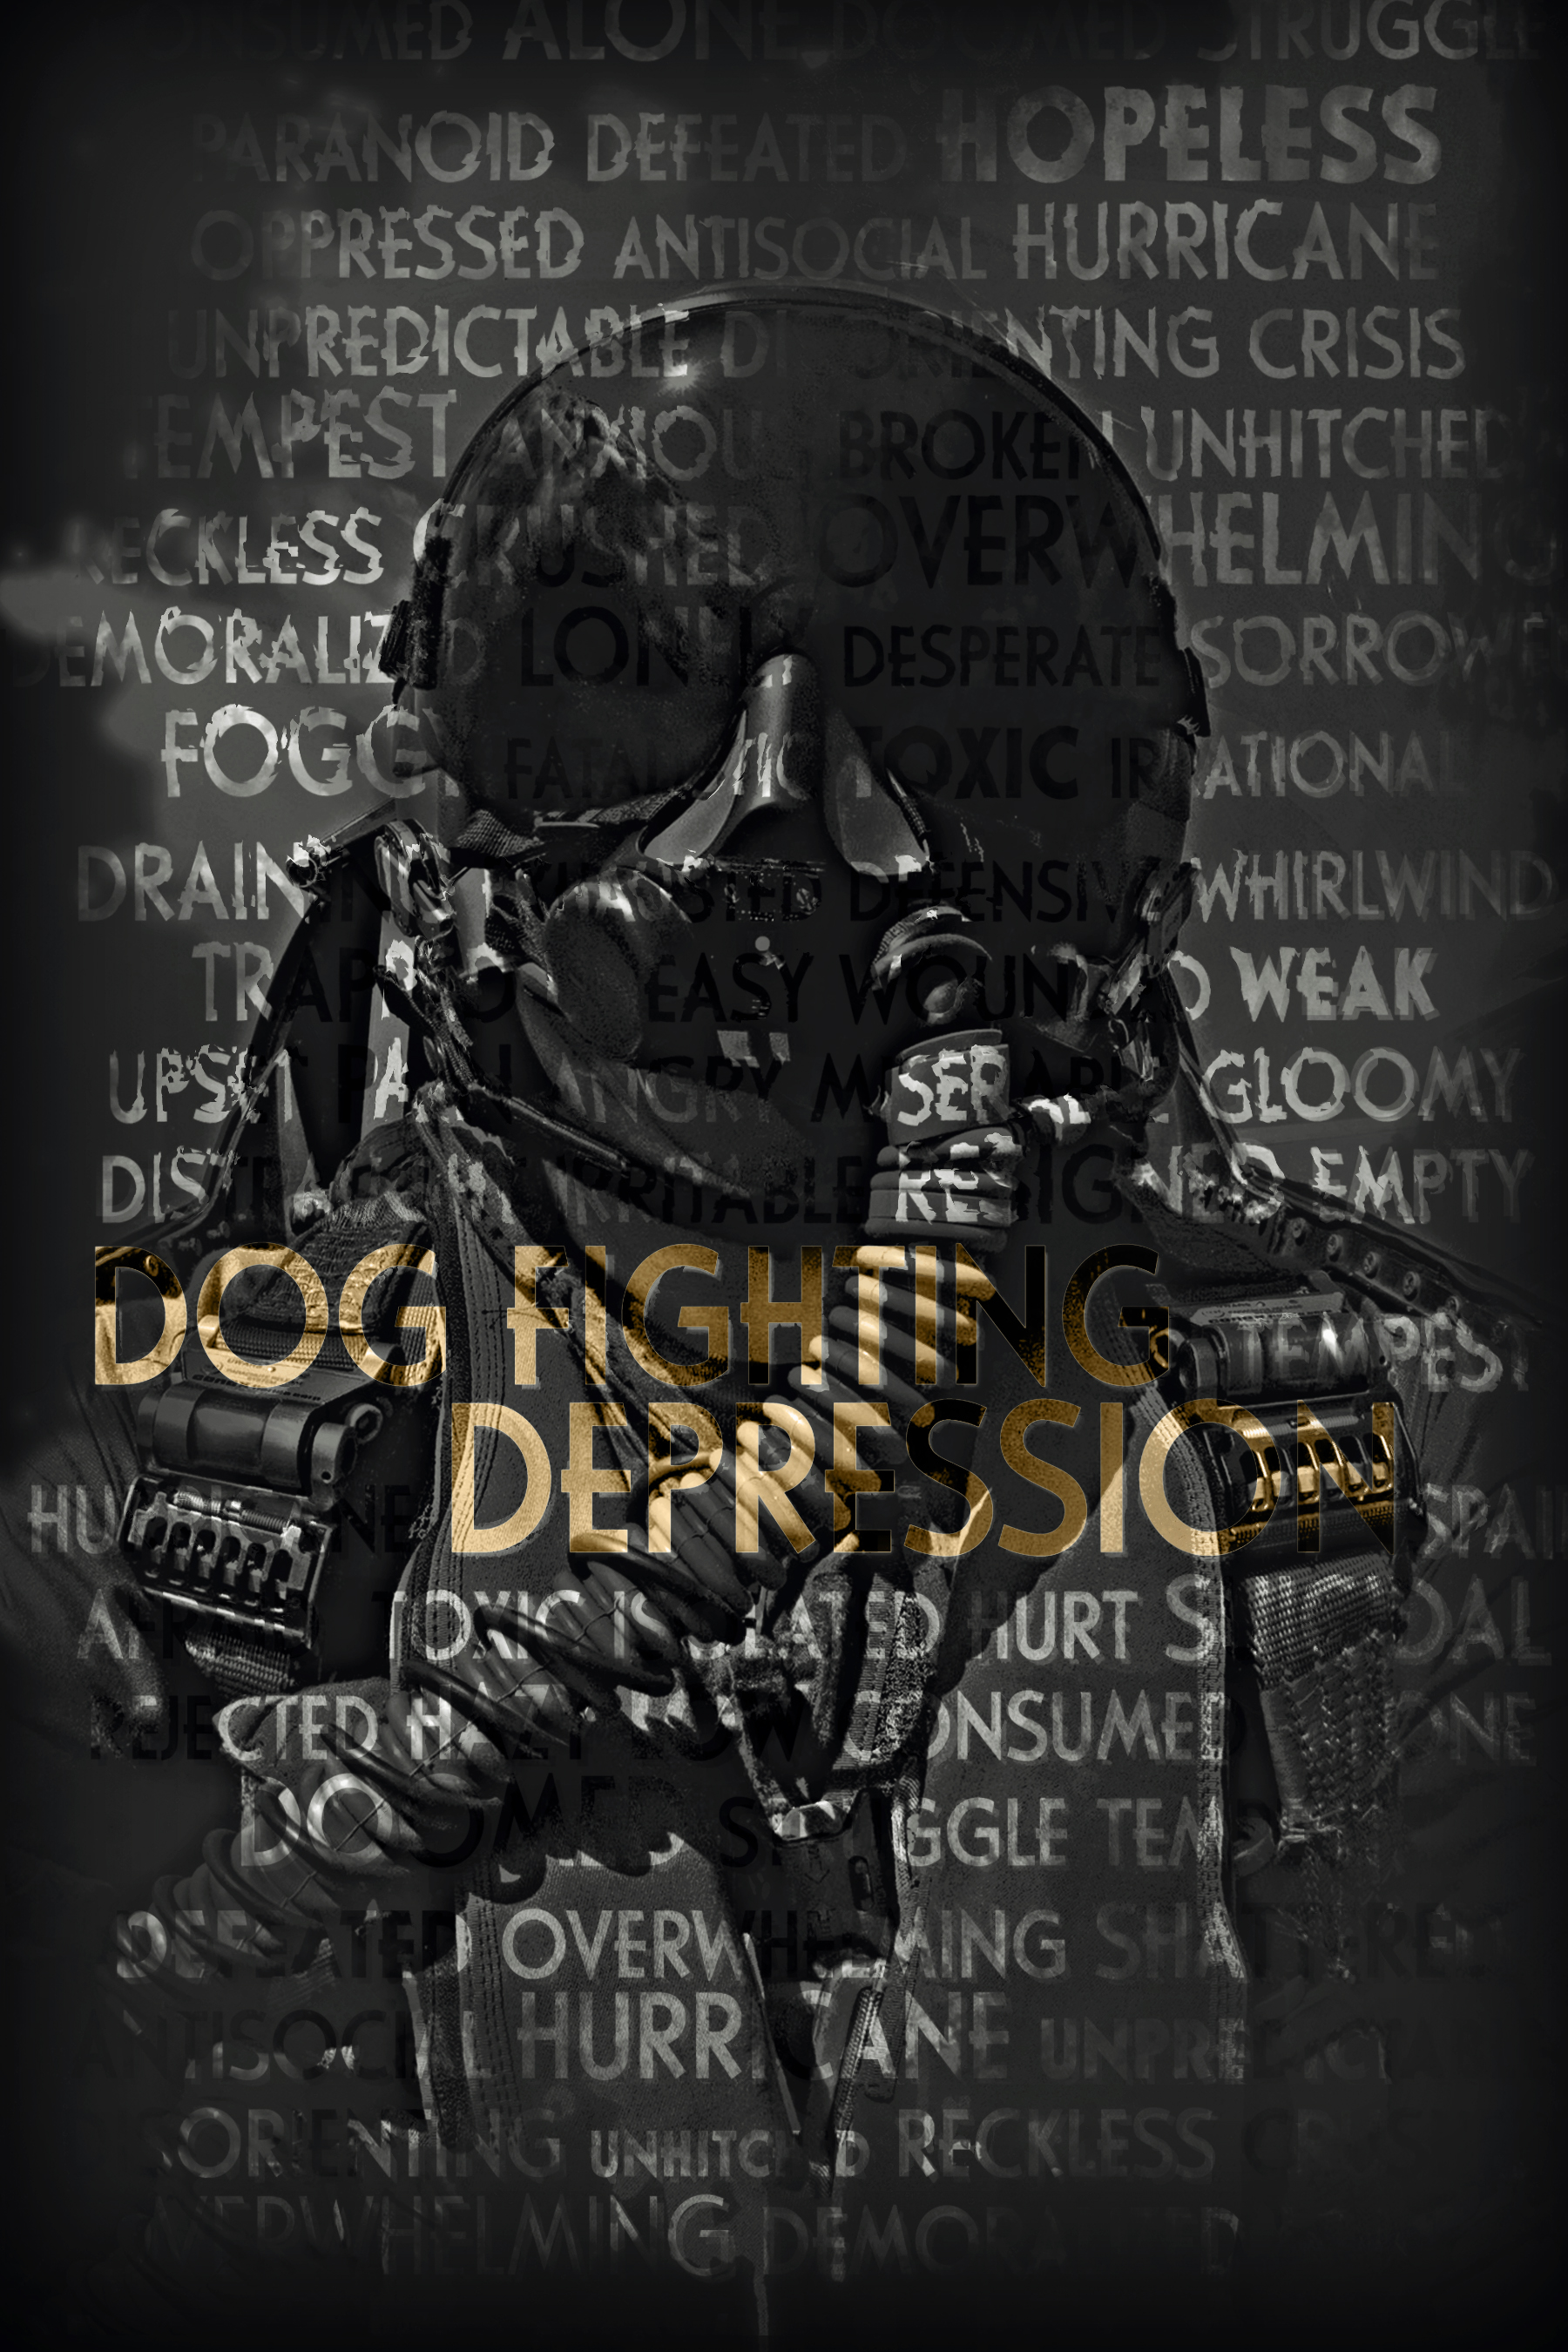 Dave Dequeljoe dogfighting depression book cover final oct 13 2018